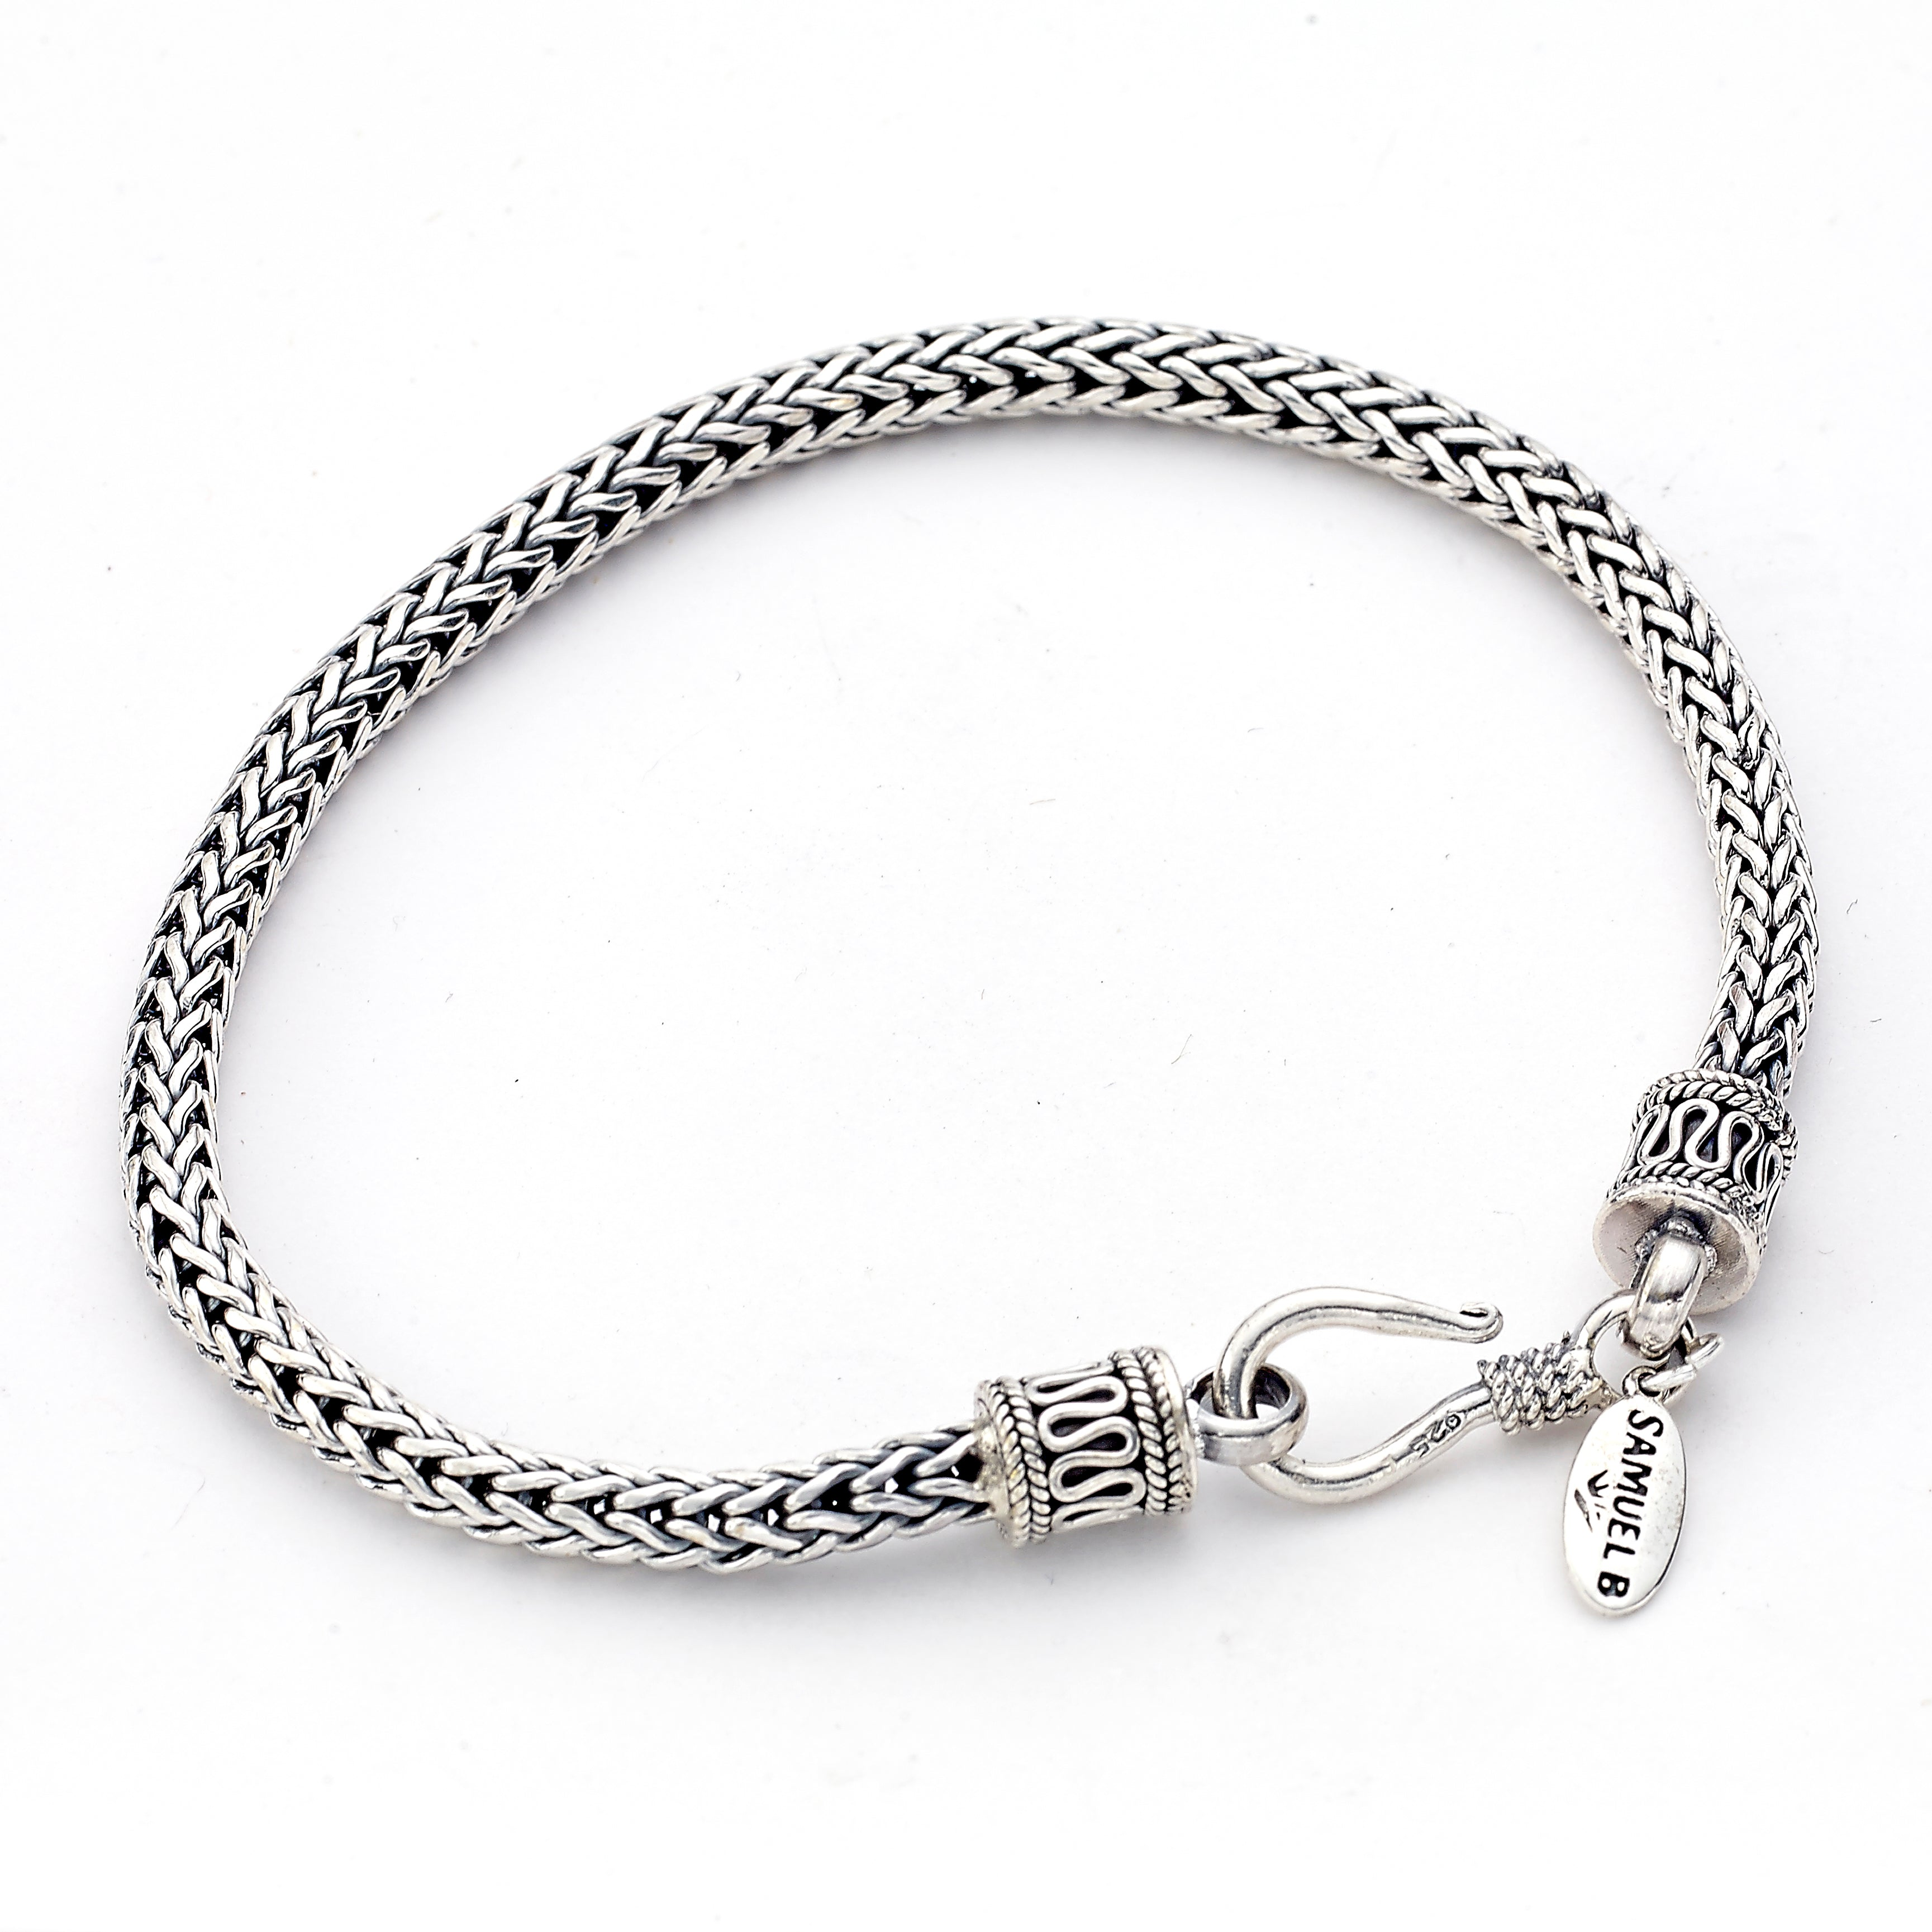 Woven Bracelet with Hook Closure, Sterling Silver, 8.5 Inches